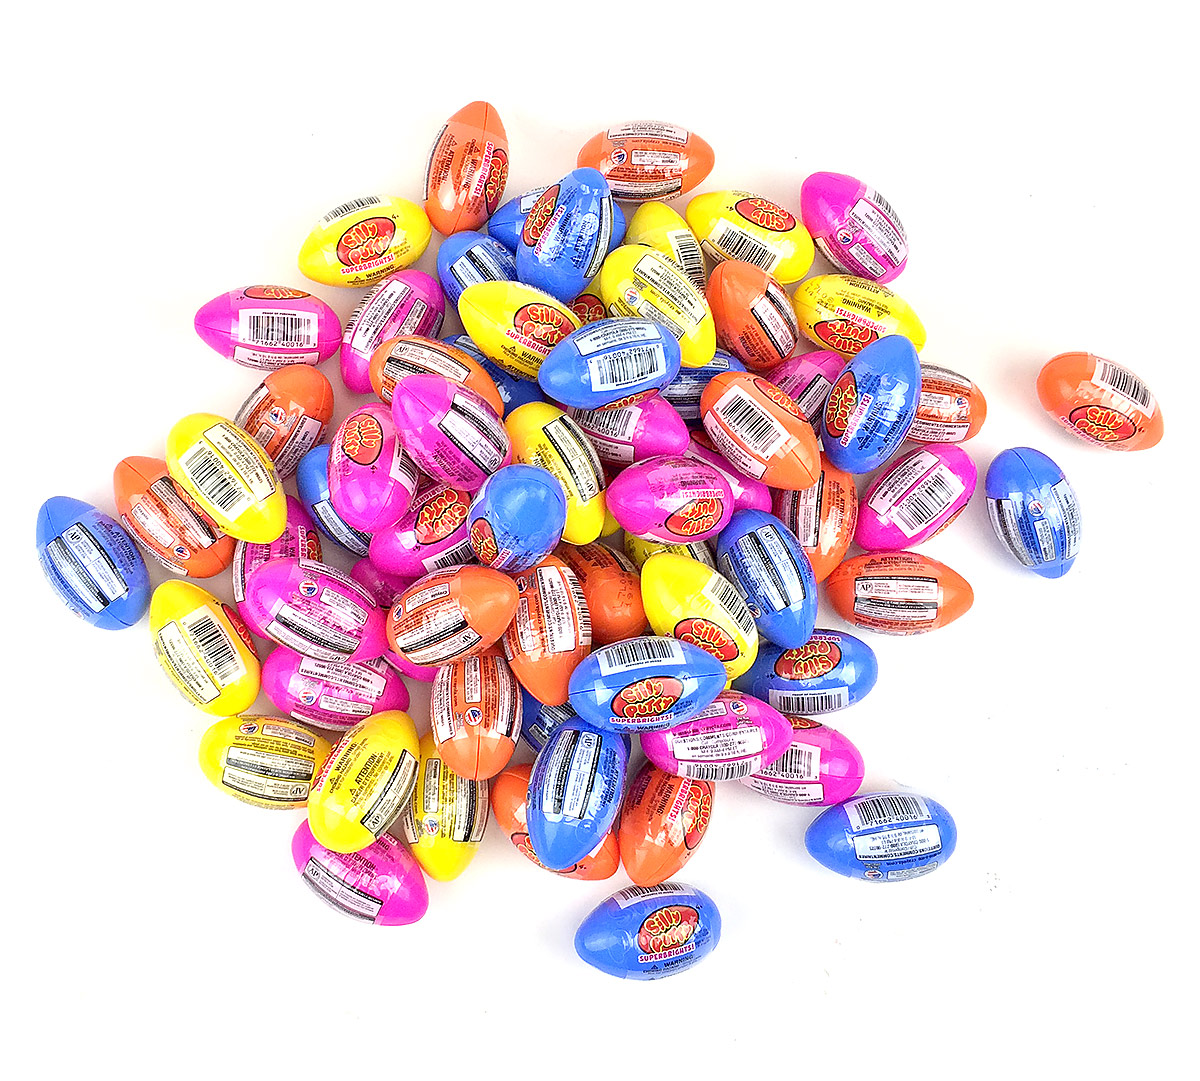 72 count Silly Putty - Bright Eggs-Assorted Colors